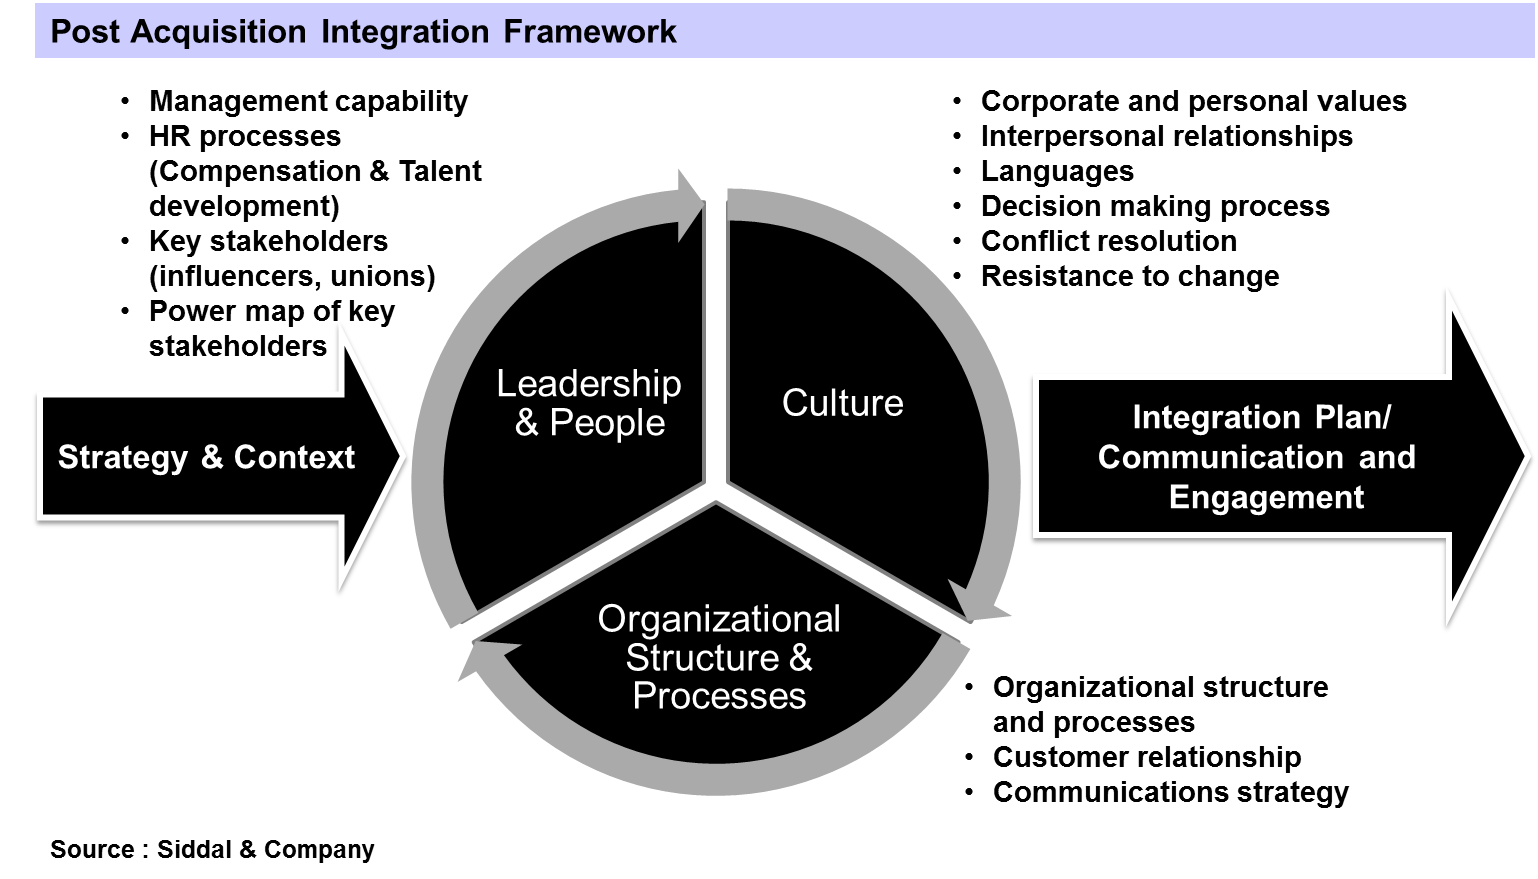 Potential Of The Internal Resources And Capabilities Need To Be Well Aligned Achieve Success In Implementing Any Strategy Especially For Integration